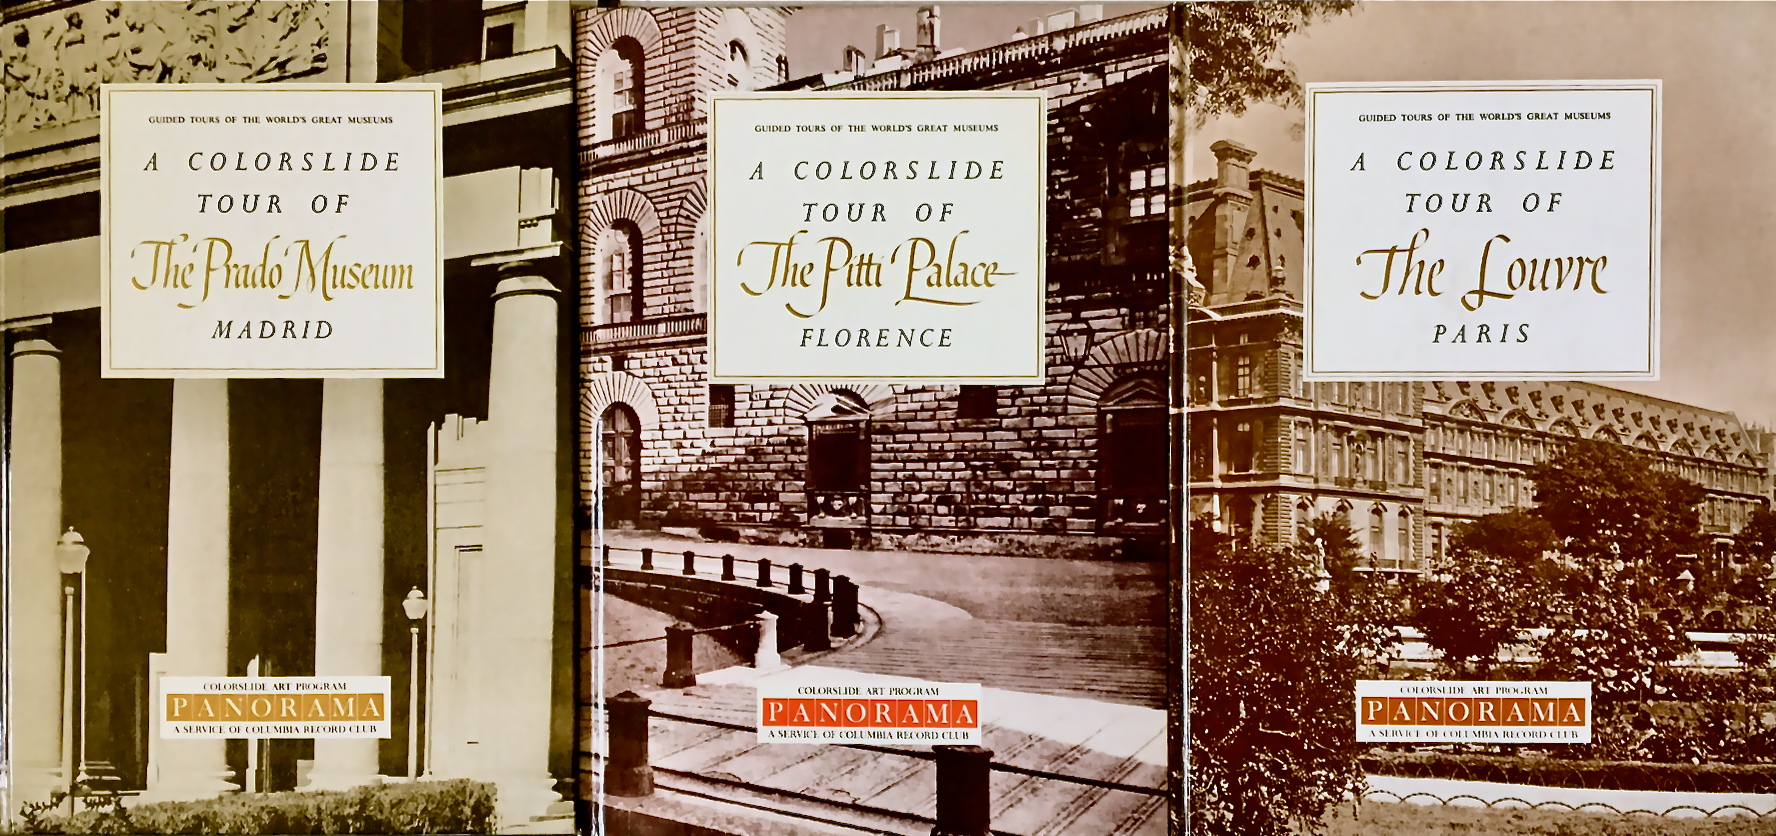 Colorslide Tour_Museums